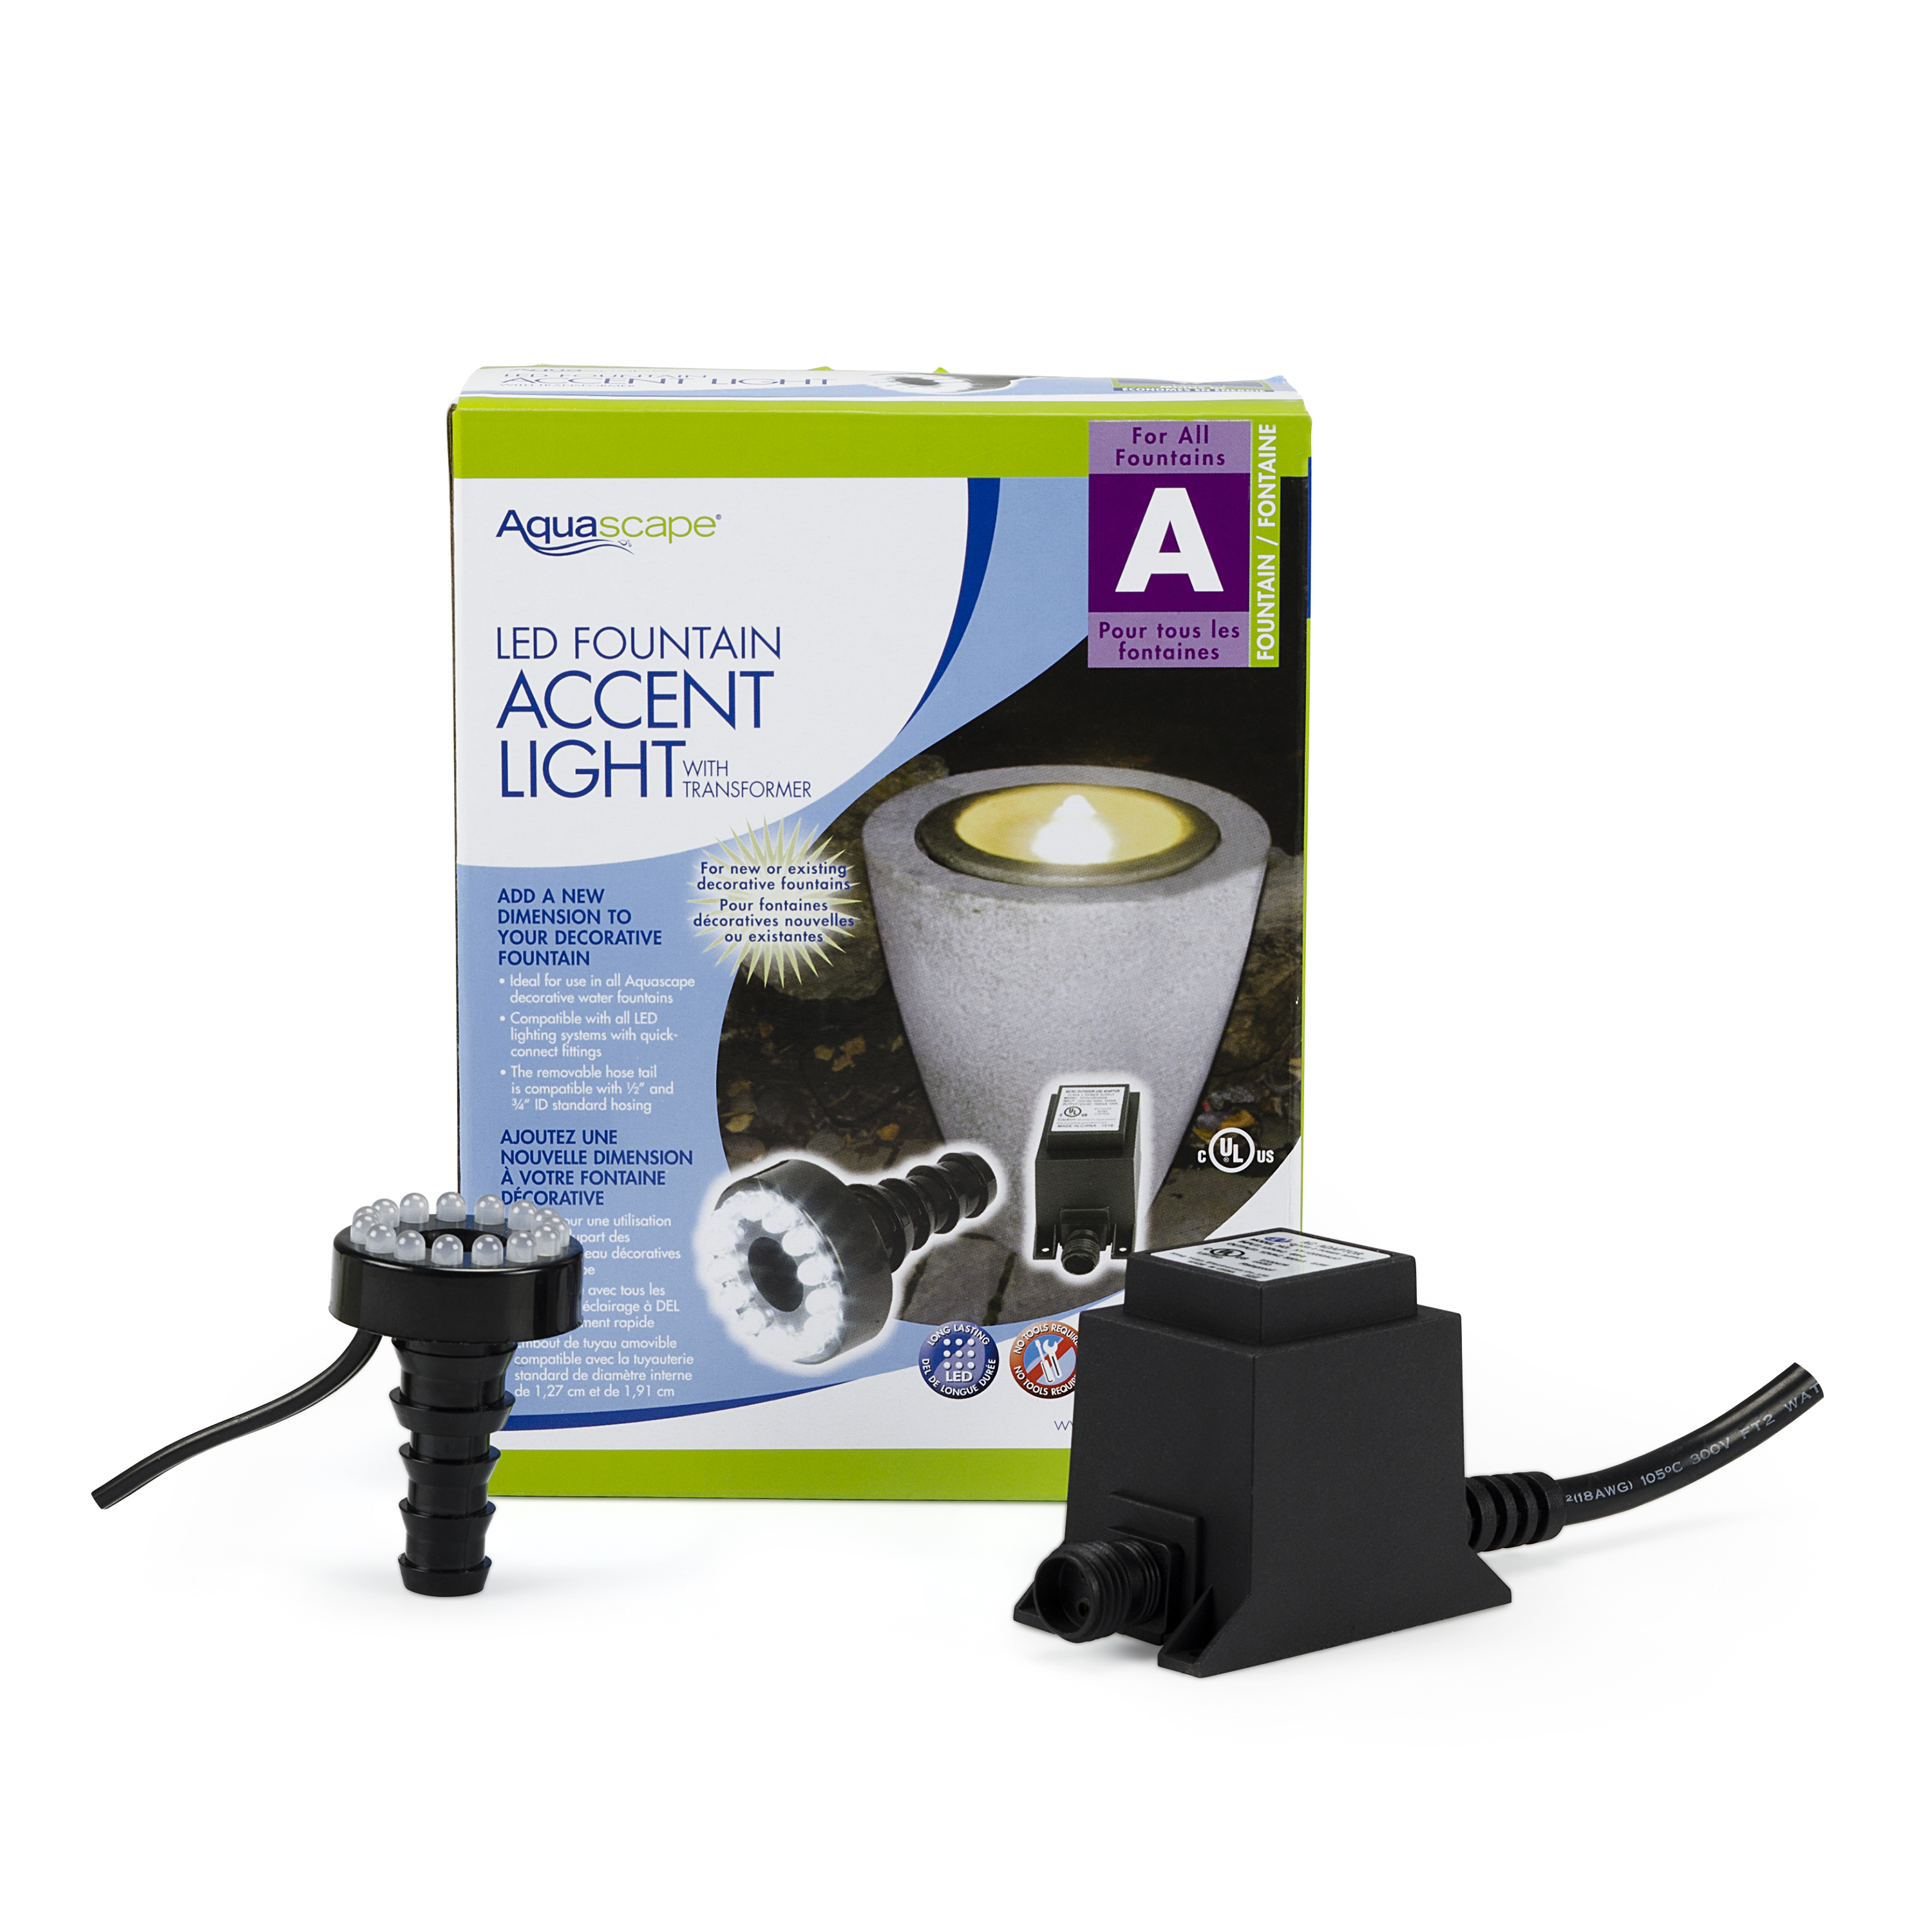 Aquascape Garden And Pond Photocell With Digital Timer